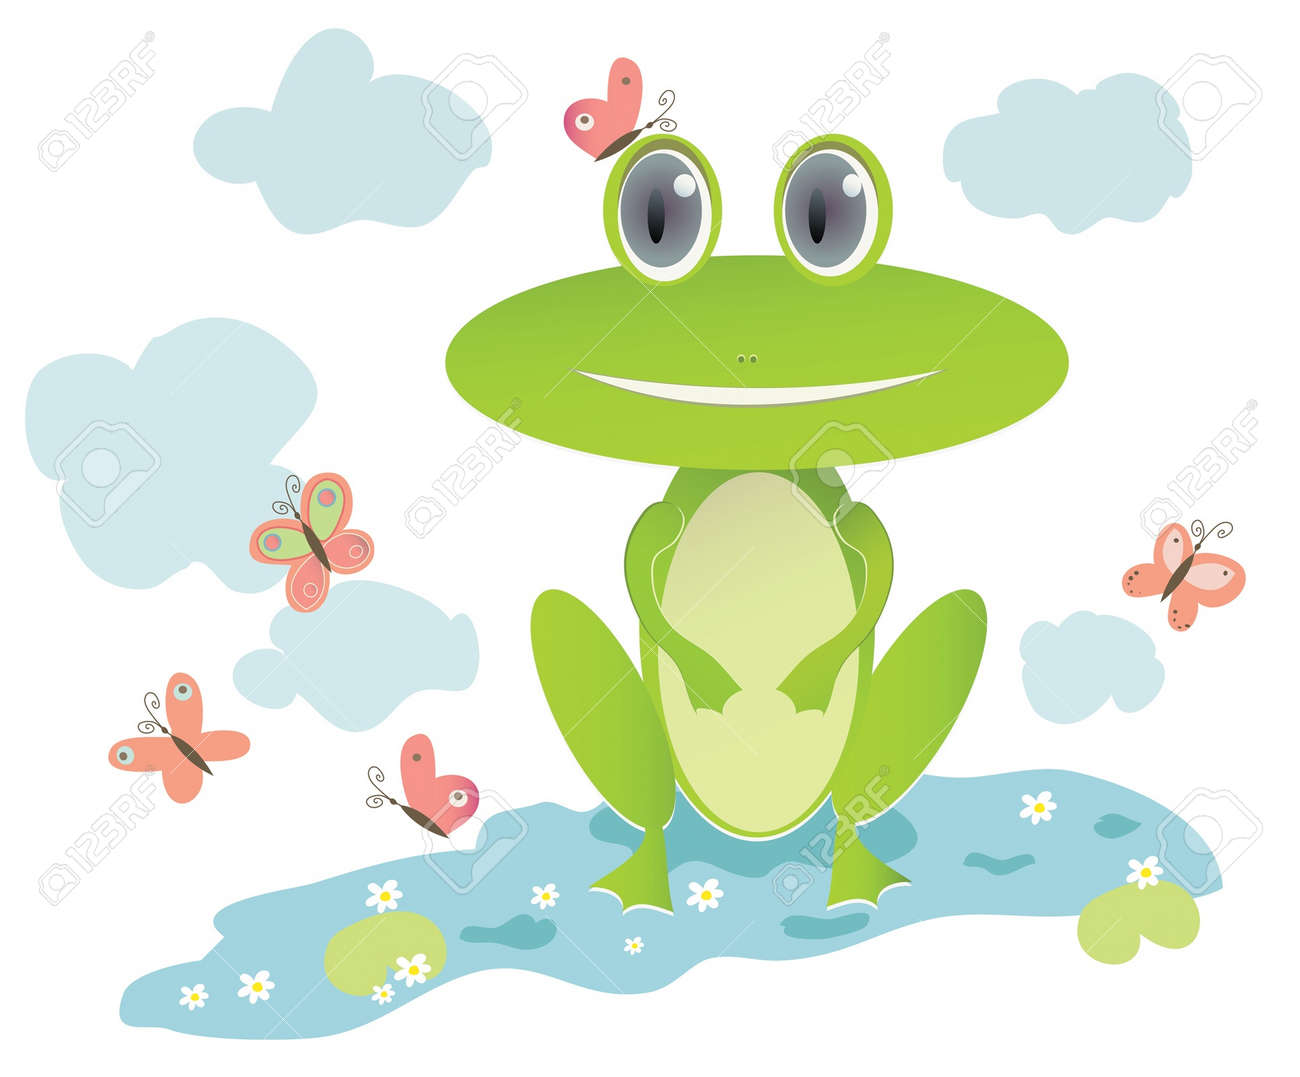 illustration of frog in lake with water flowers and butterflies